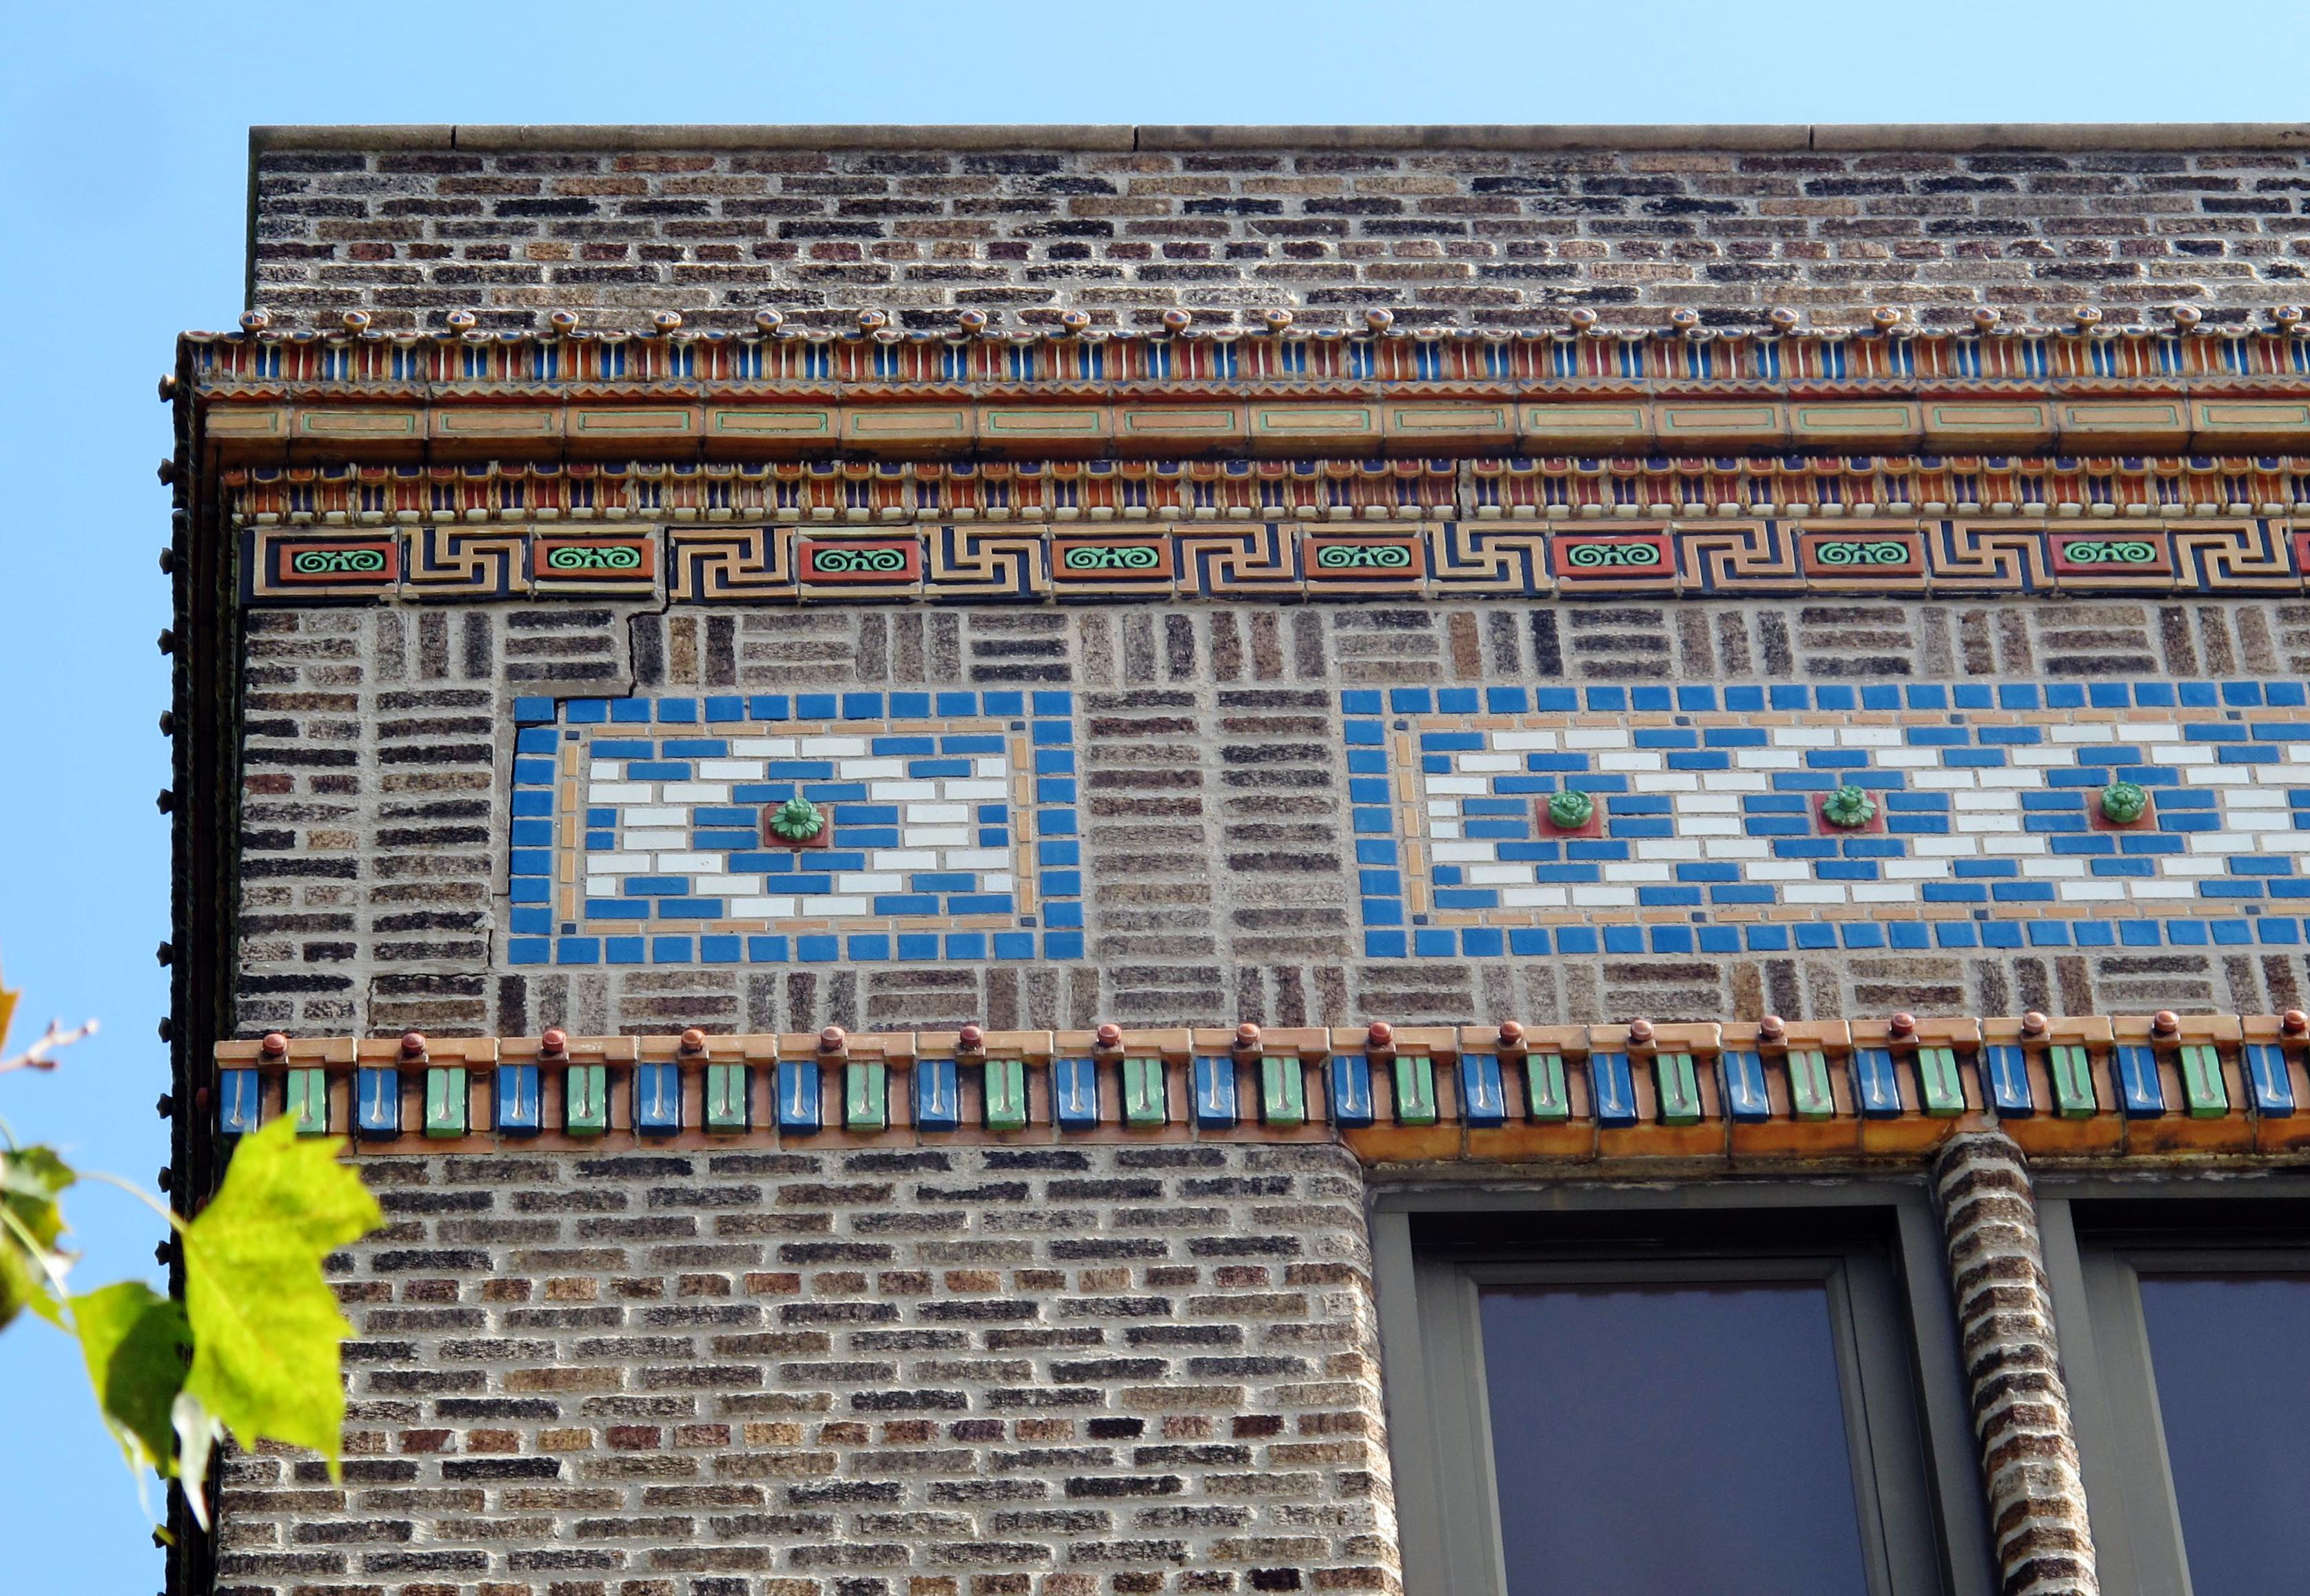 E.M. Stanton Elementary School's decorative cornice. | PlanPhilly